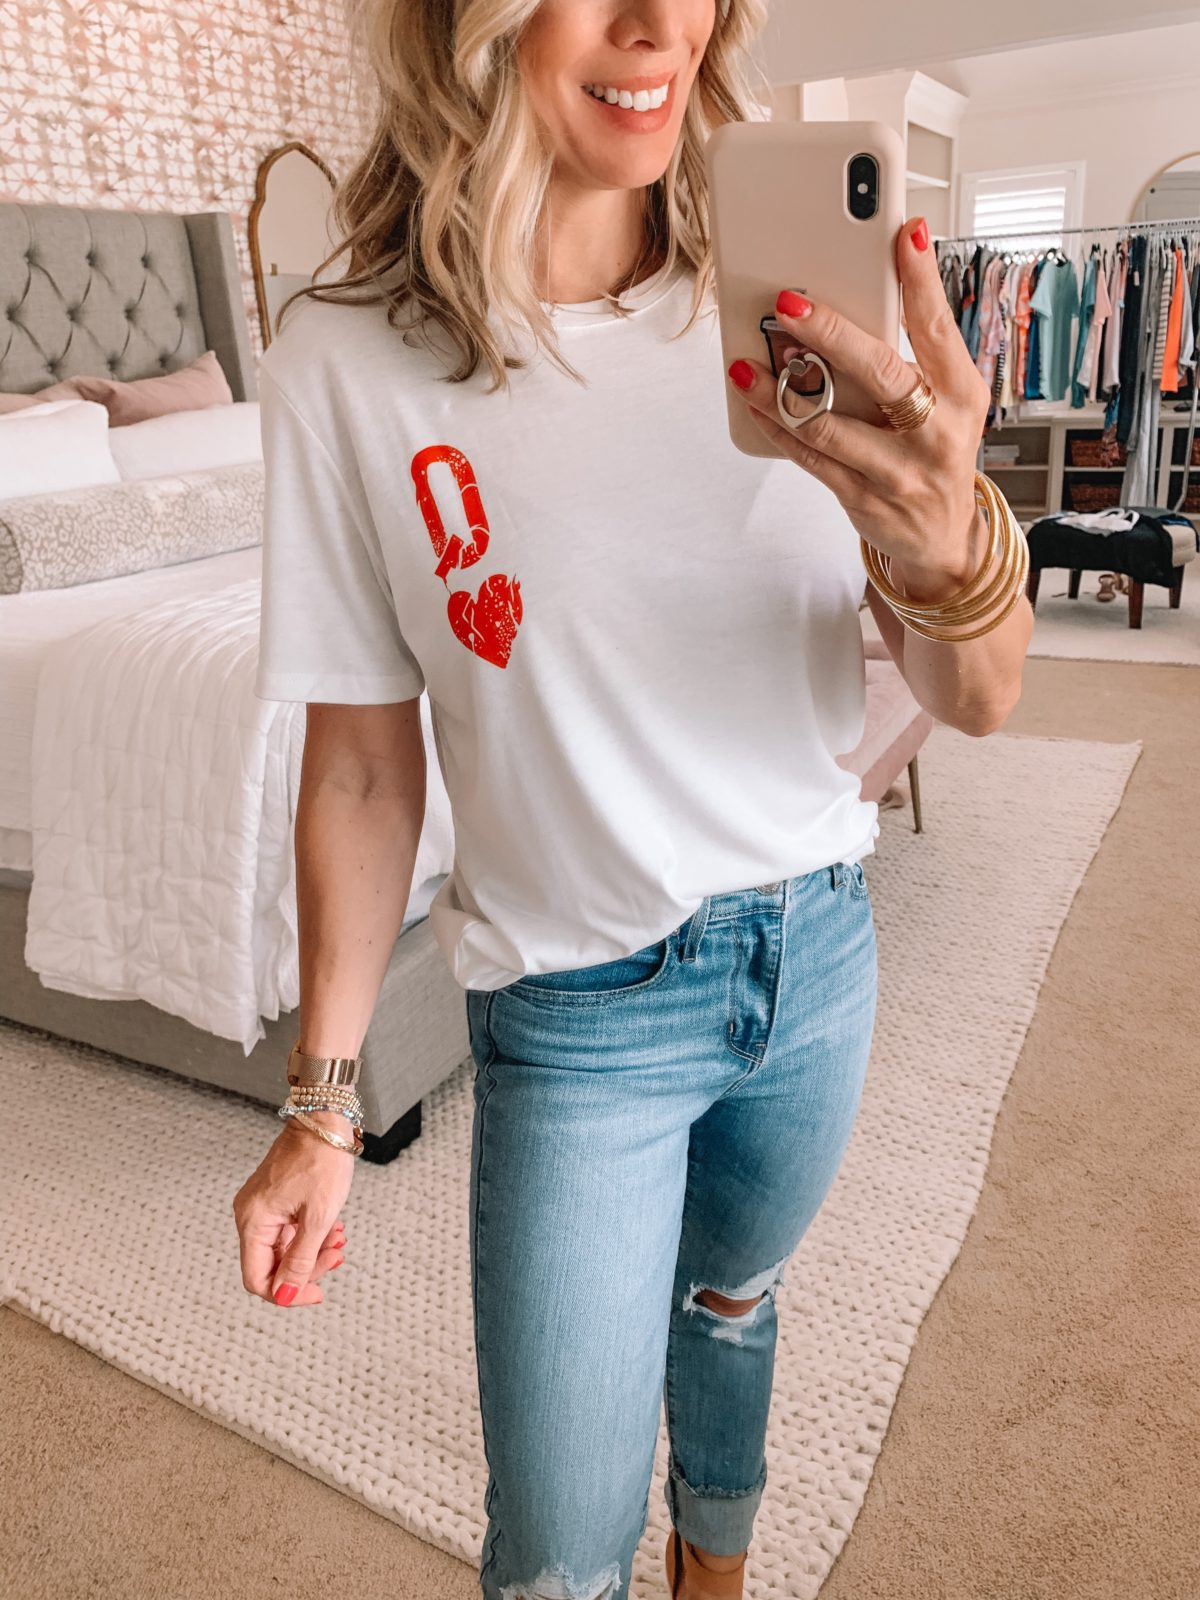 Amazon Fashion Finds, Queen of Hearts Tee, Distressed Jeans